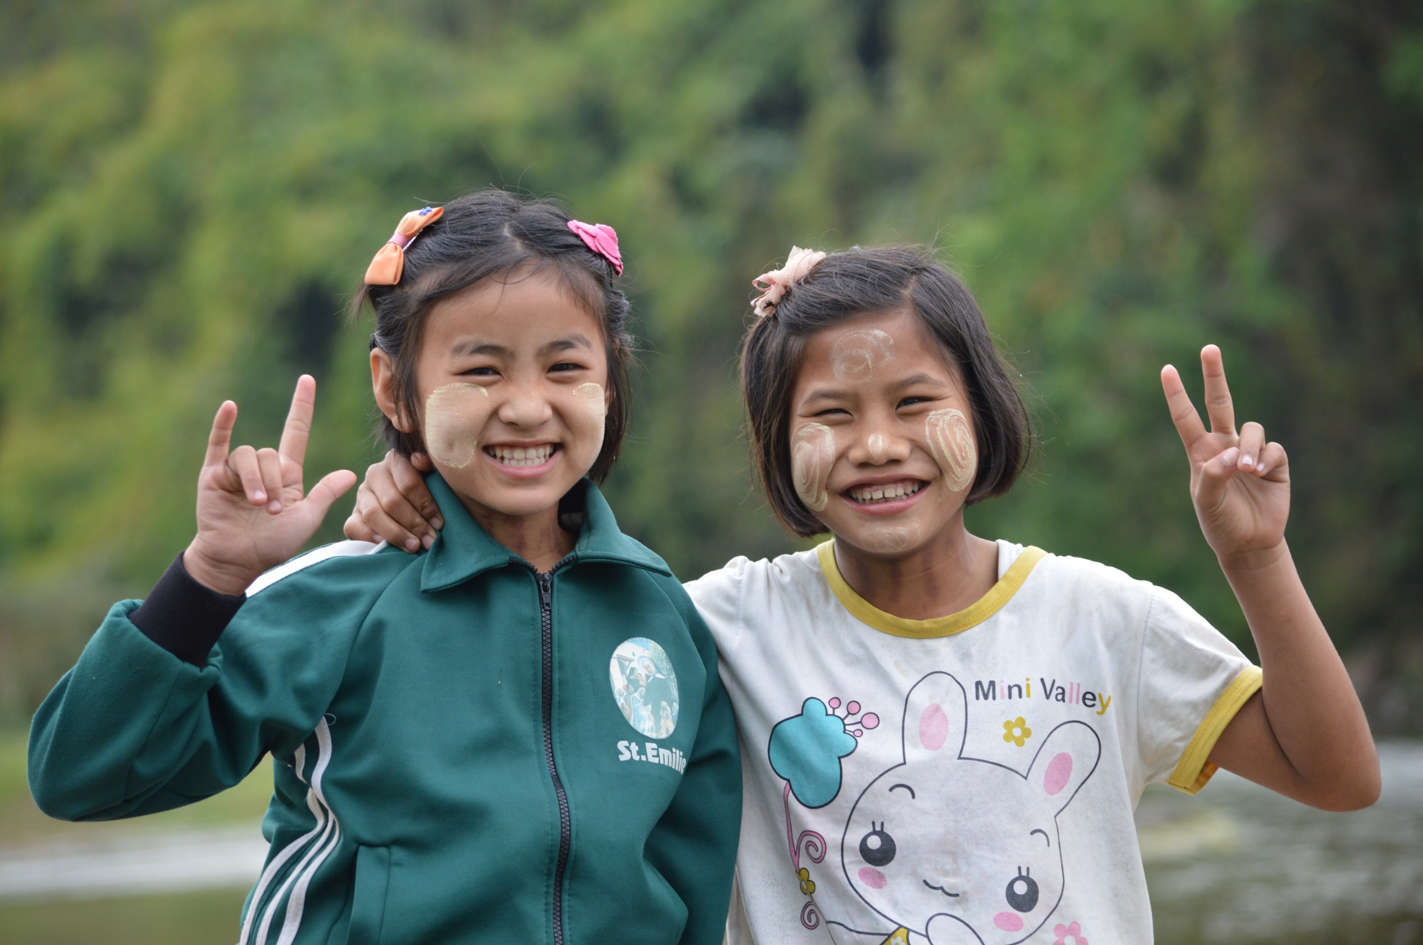 Two young girls smiling and looking at the camera